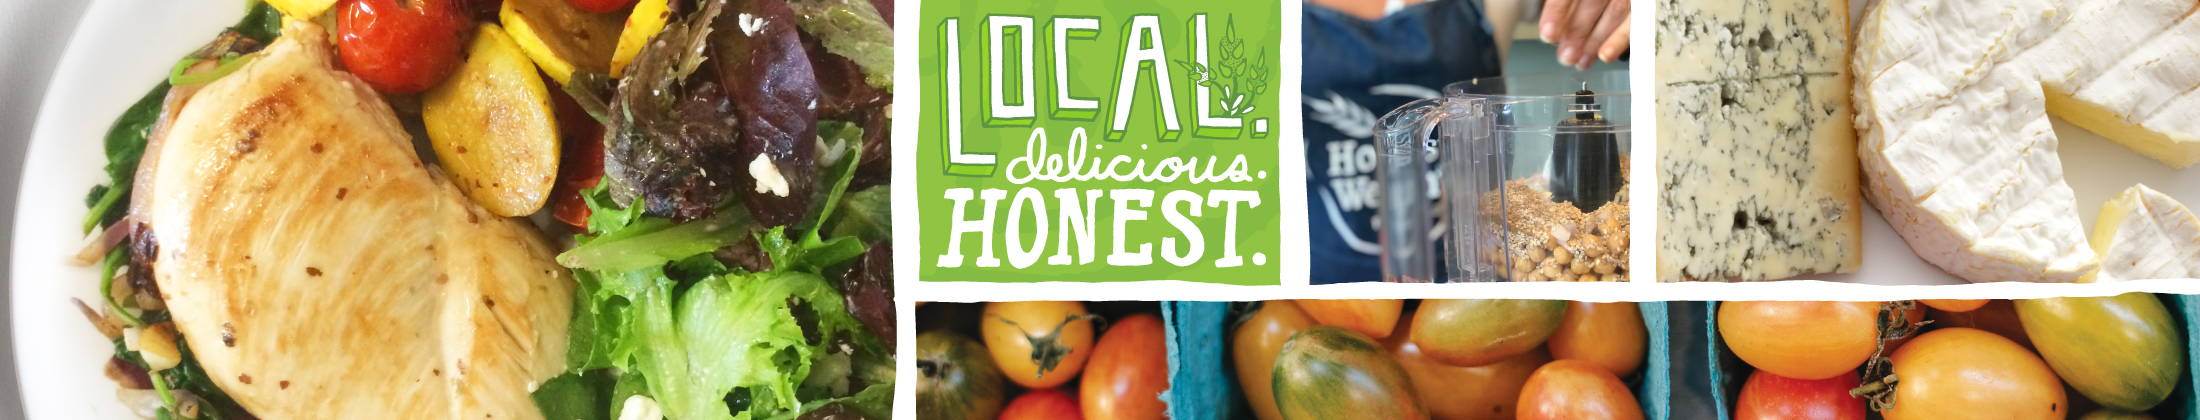 "collage of photos from Honest Weight and the illustrated words, ""Local, delicious, Honest"""